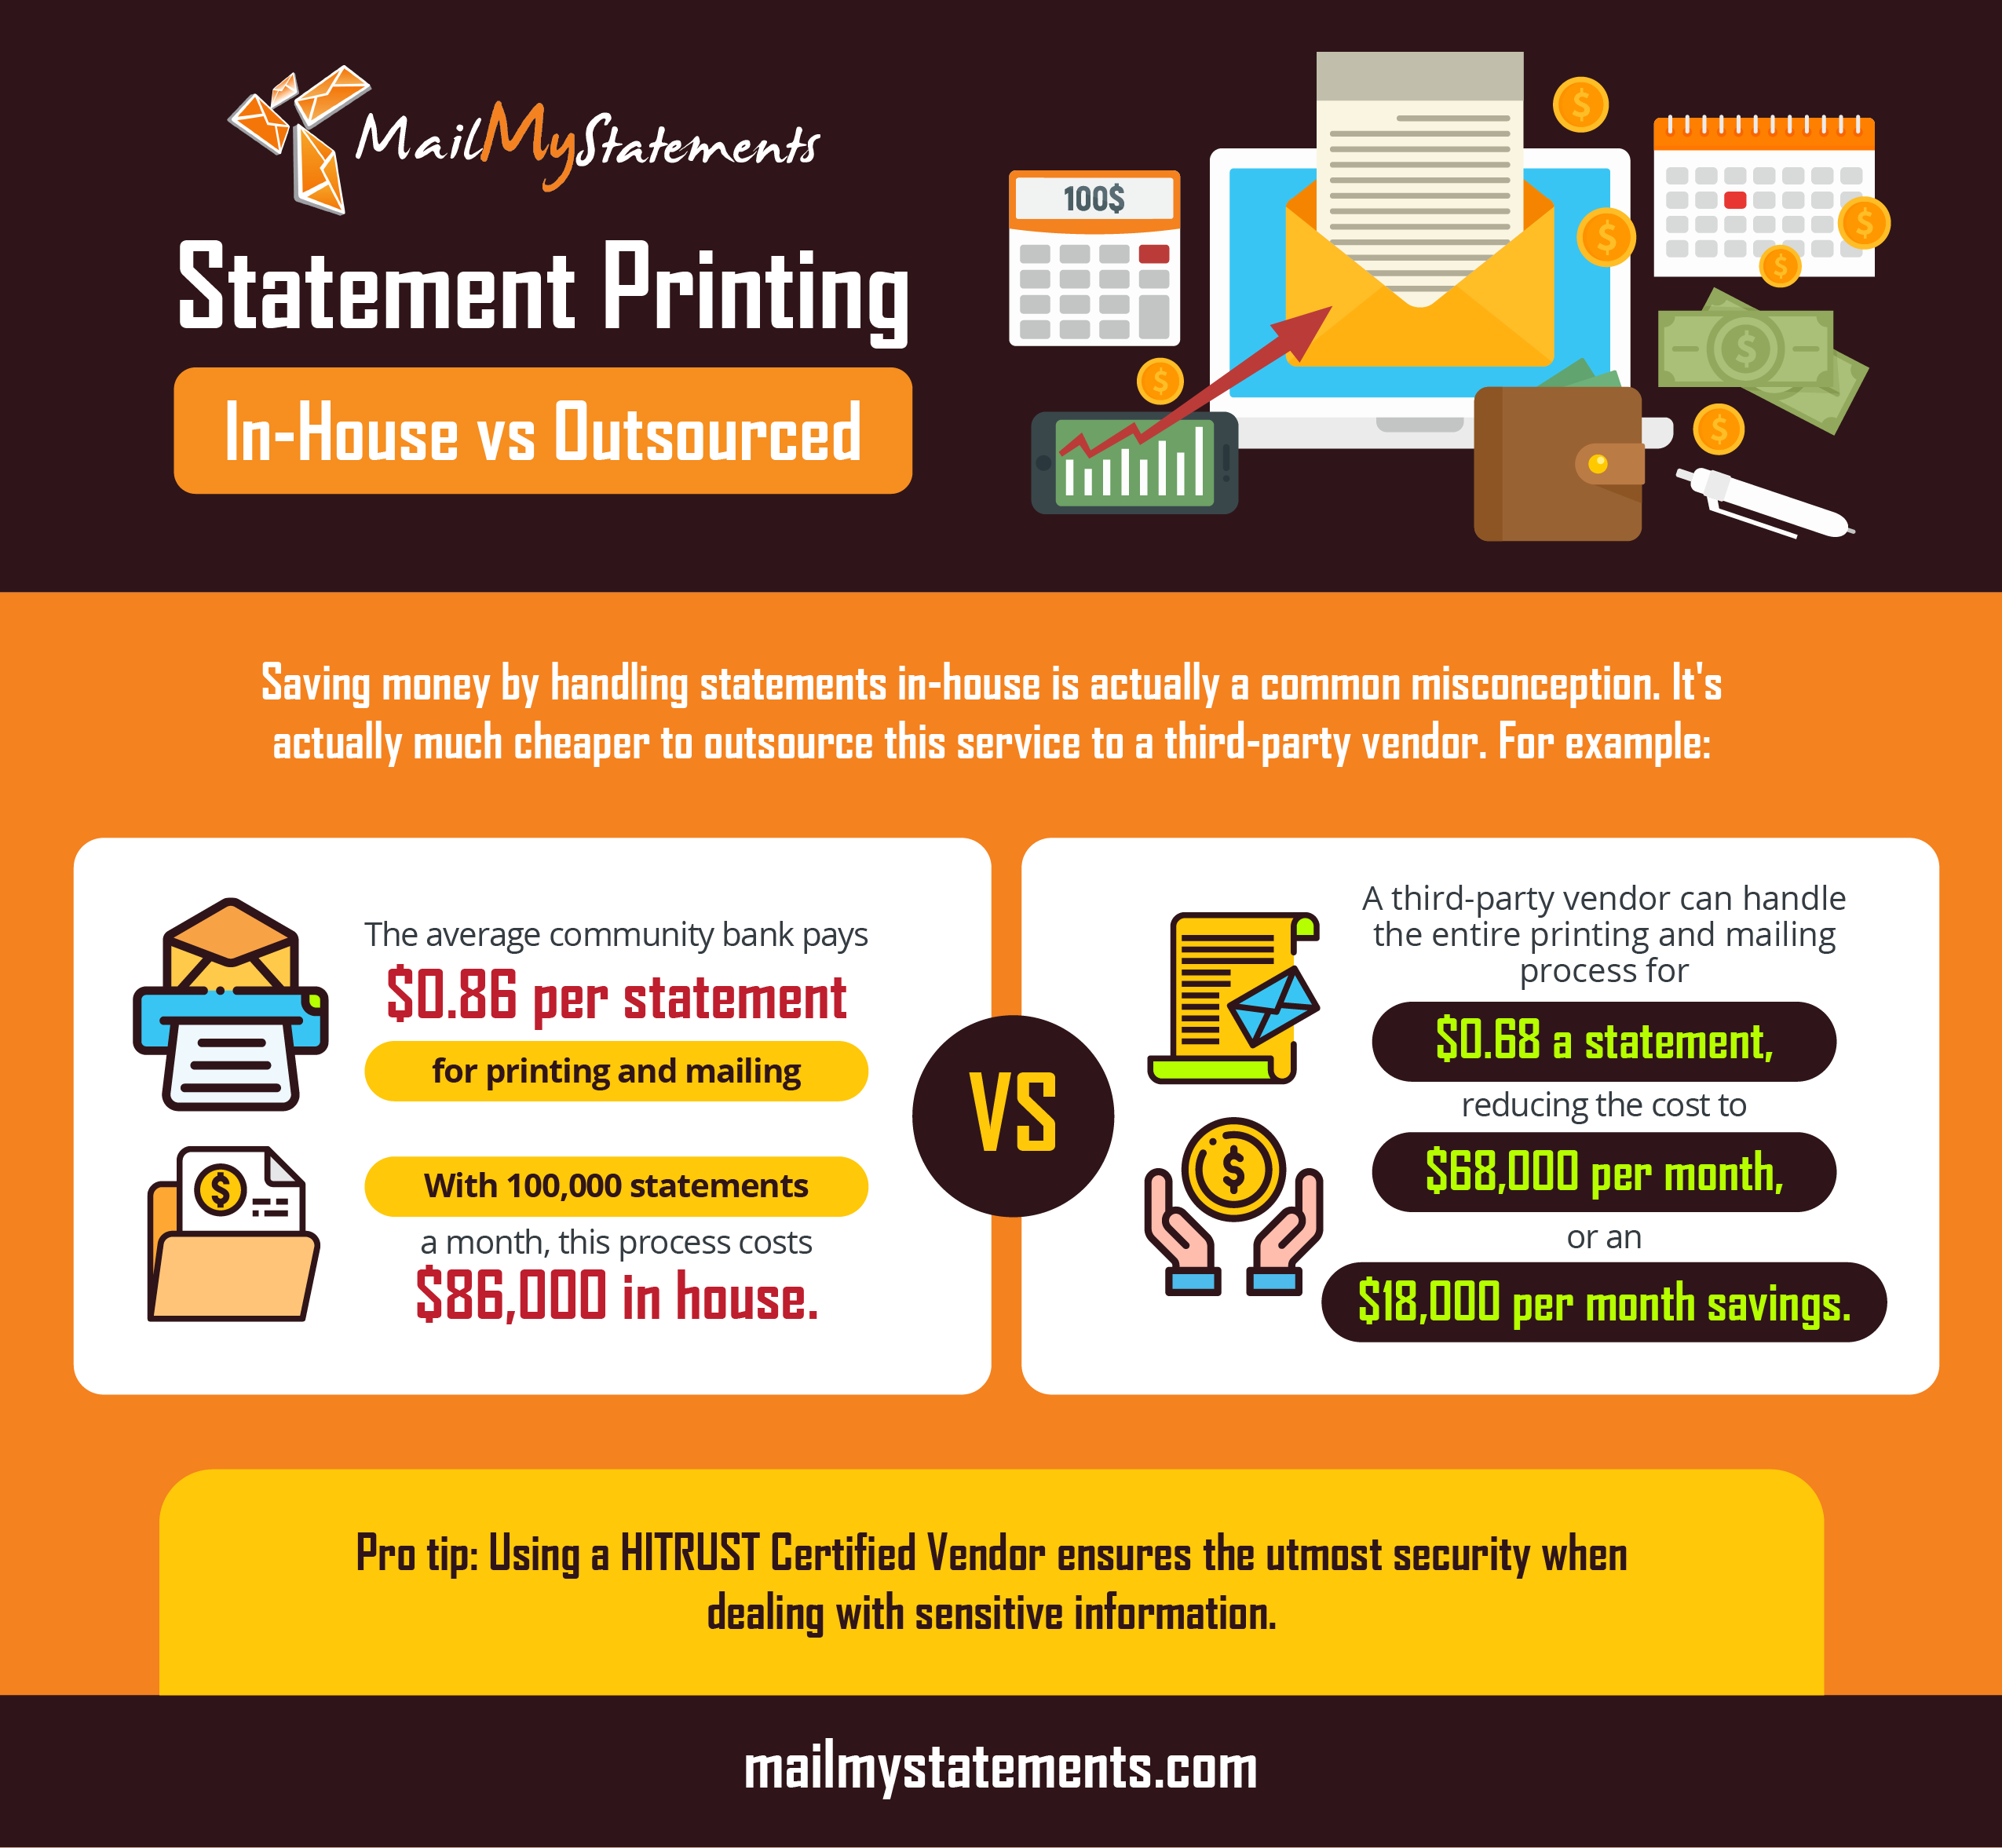 Statement-Printing-In-House-vs-Outsourced